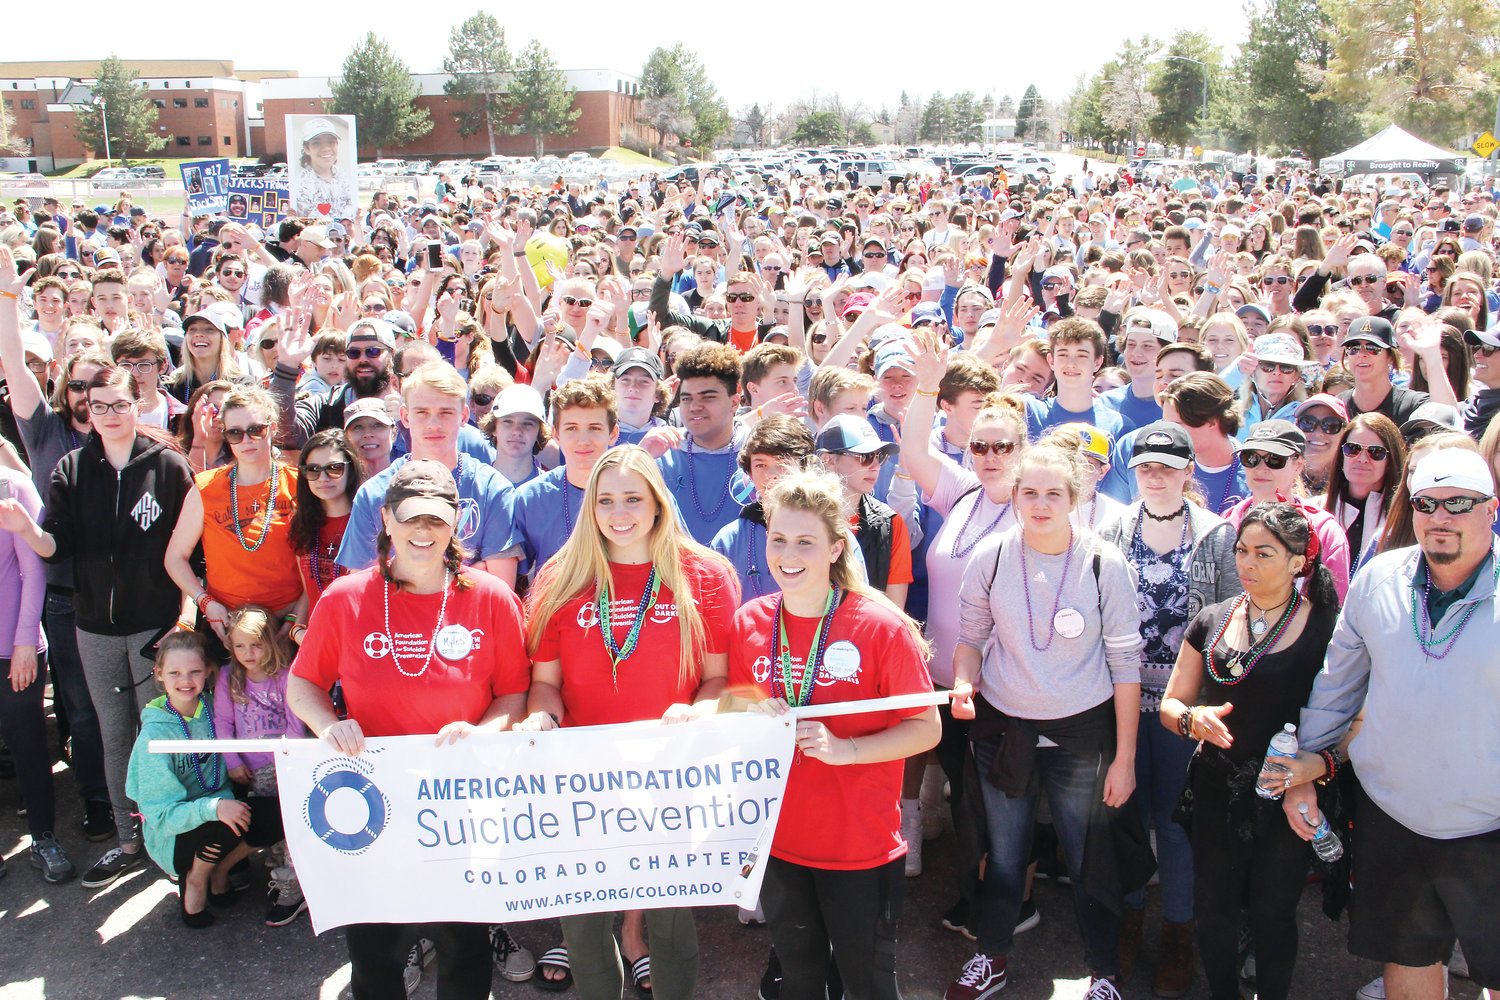 About 1,000 stand behind the organizers of the Out of the Darkness suicide-prevention walk April 14 on the Arapahoe High School campus. In front, left to right, stand Melissa Hughes, a volunteer with the American Foundation for Suicide Prevention, and Brooke and Ry, Arapahoe students.